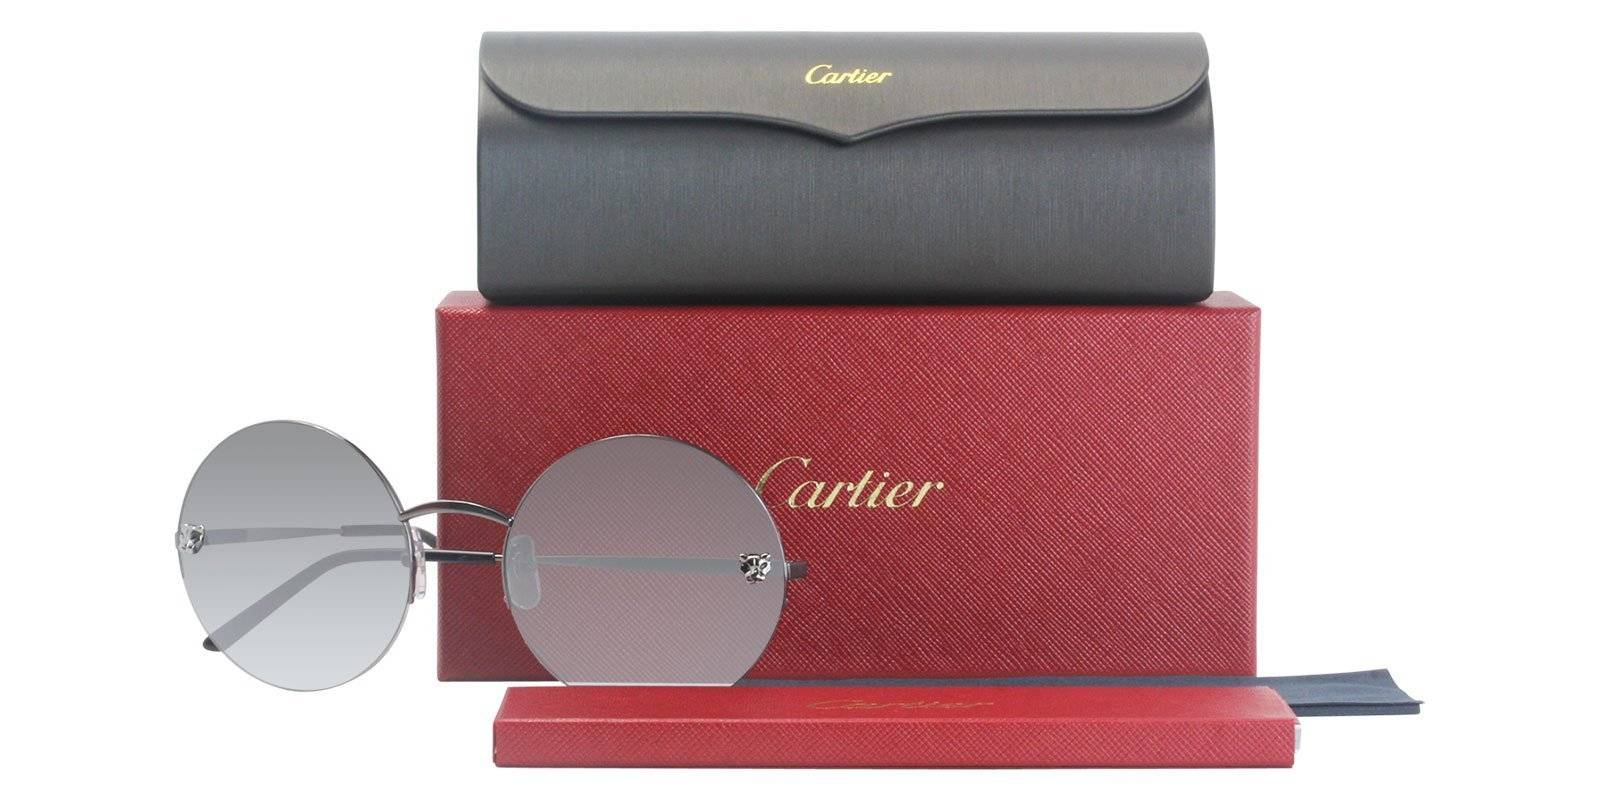 3f6f76a4a4c These round Panthère de Cartier sunglasses are avialable in three  distintive colors. The most popular being a smooth champagne golden-finish  metal